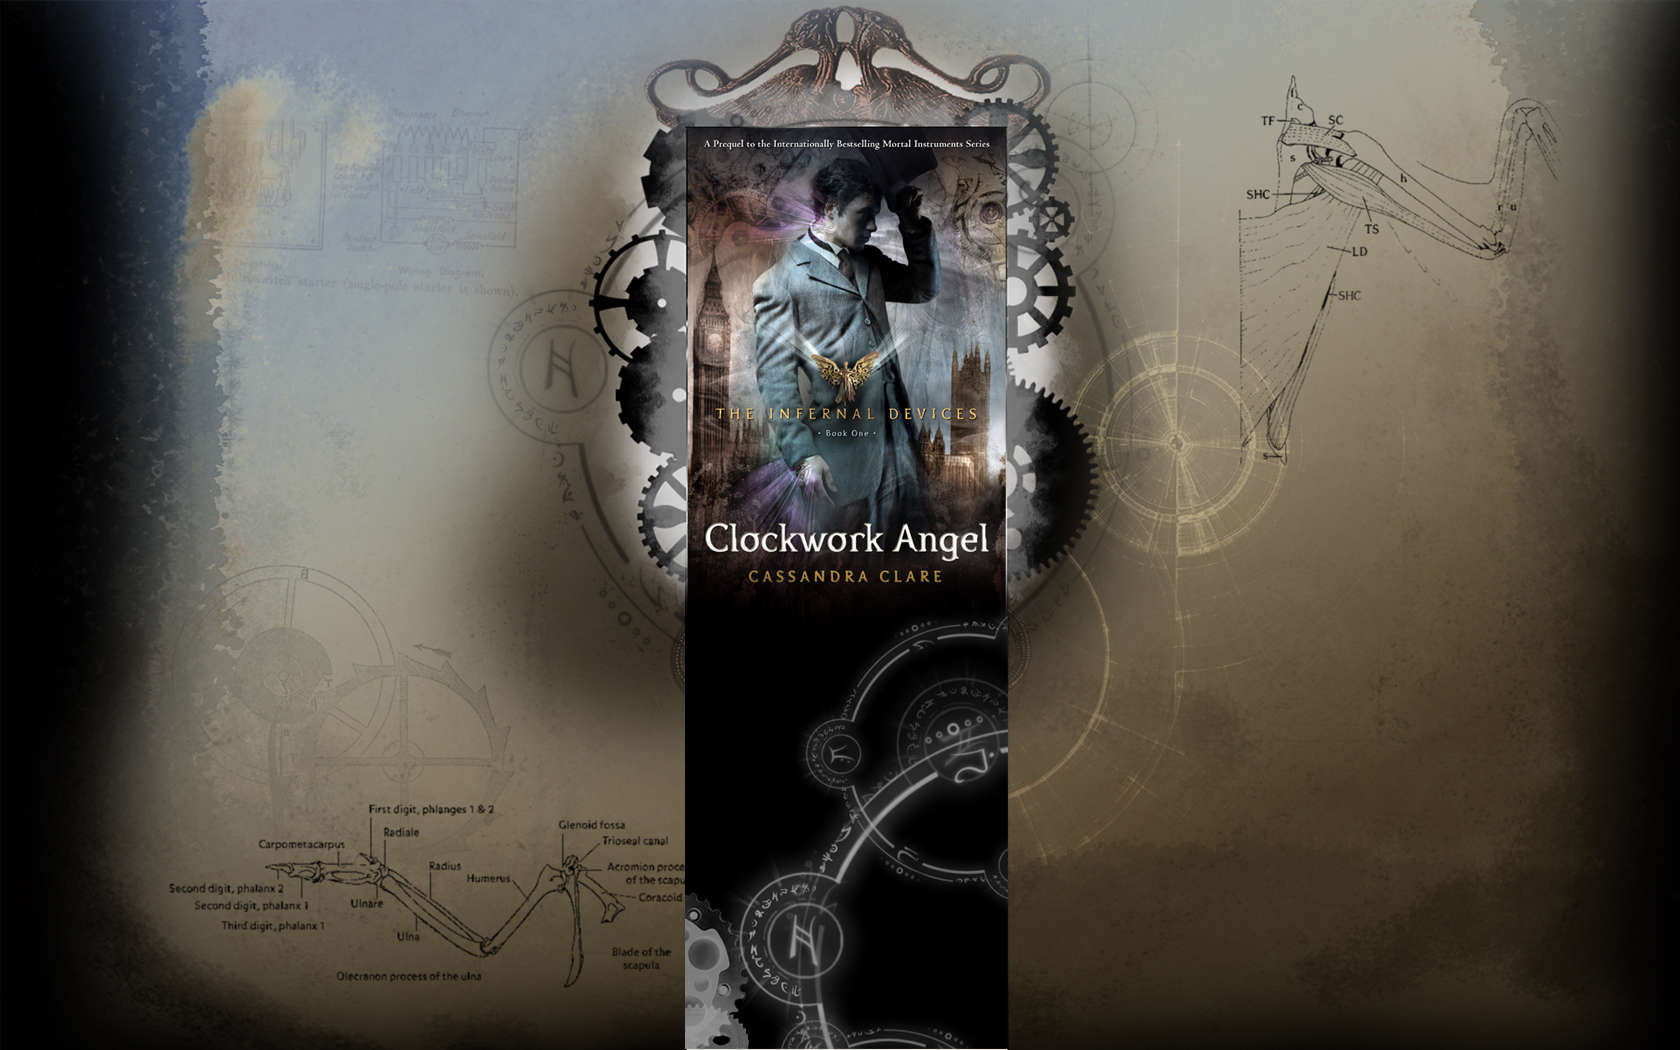 Clockwork Angel Desktop Wallpapers: Part 1 - Novel Novice